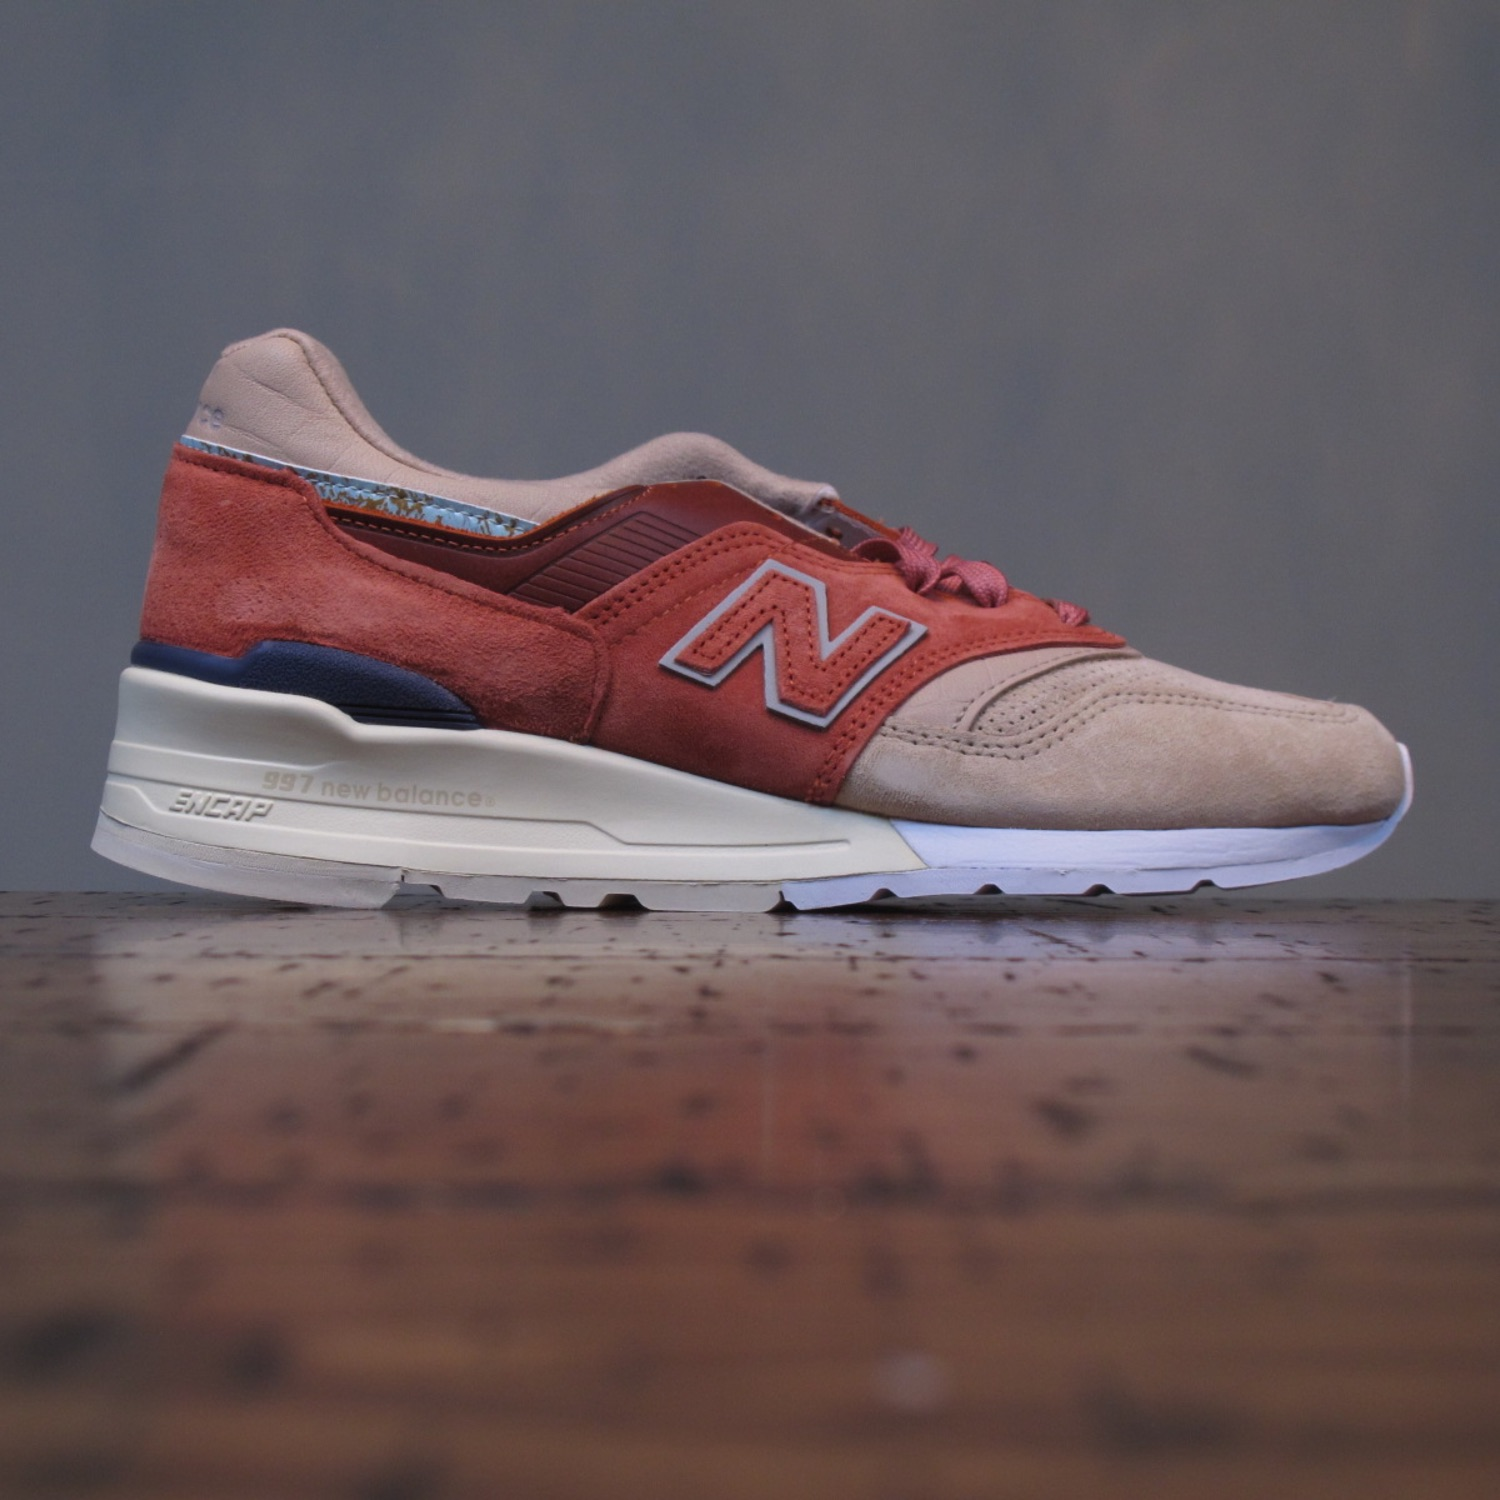 timeless design 84d02 aeb58 New Balance X Stance 997 Collab Ds Size 7.5